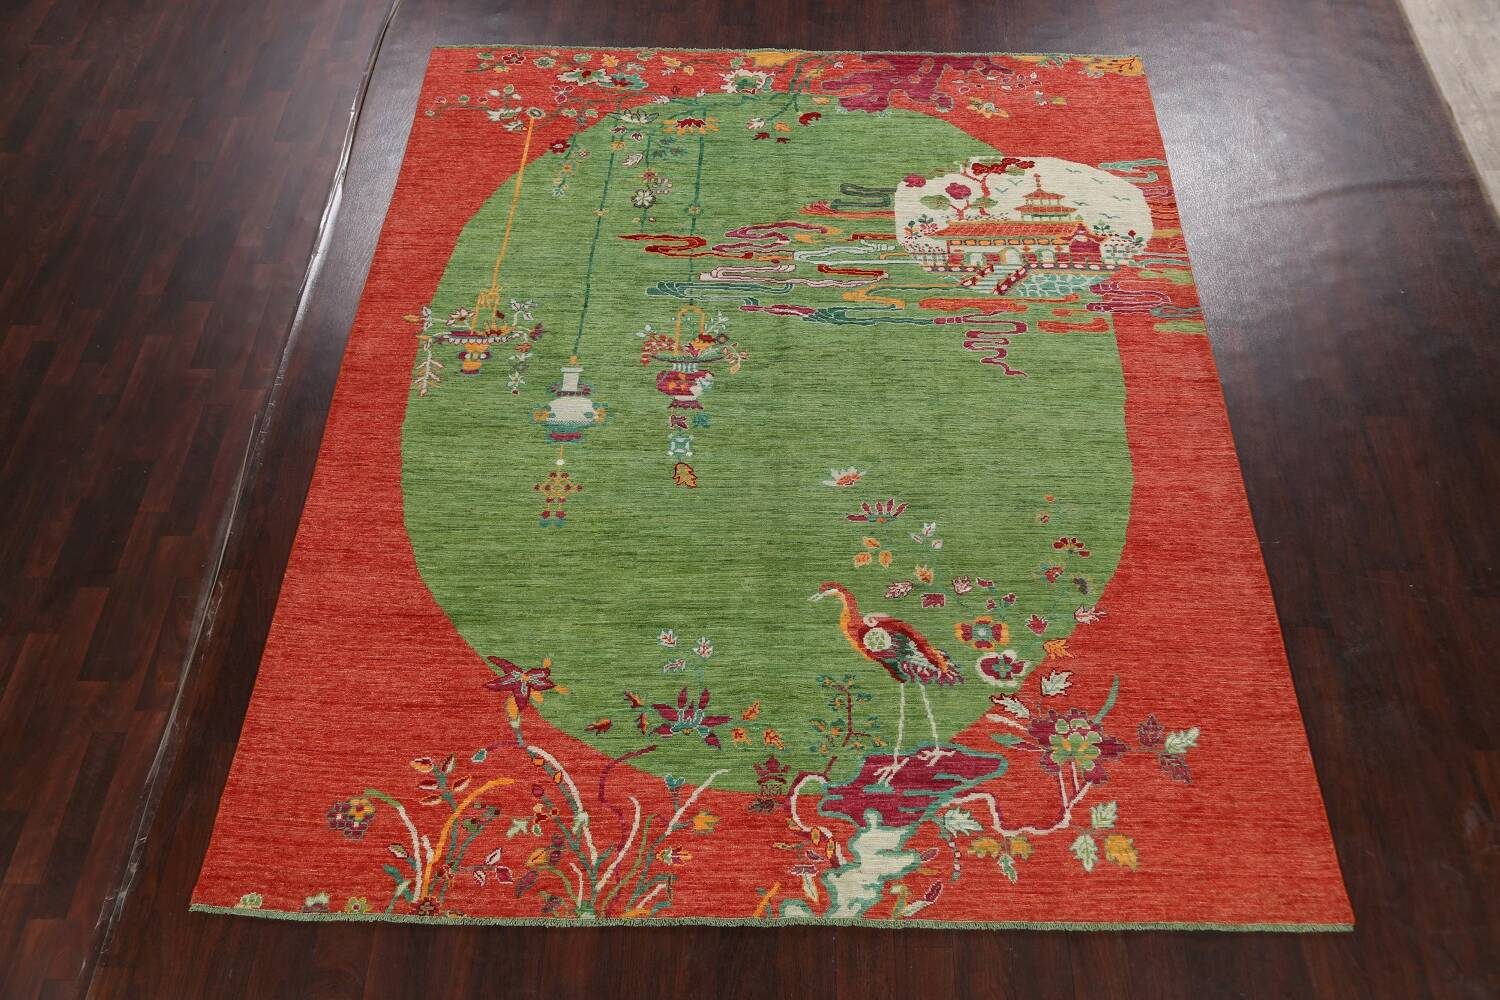 Pictorial Art Deco Chinese Oriental Area Rug 8x10 image 2